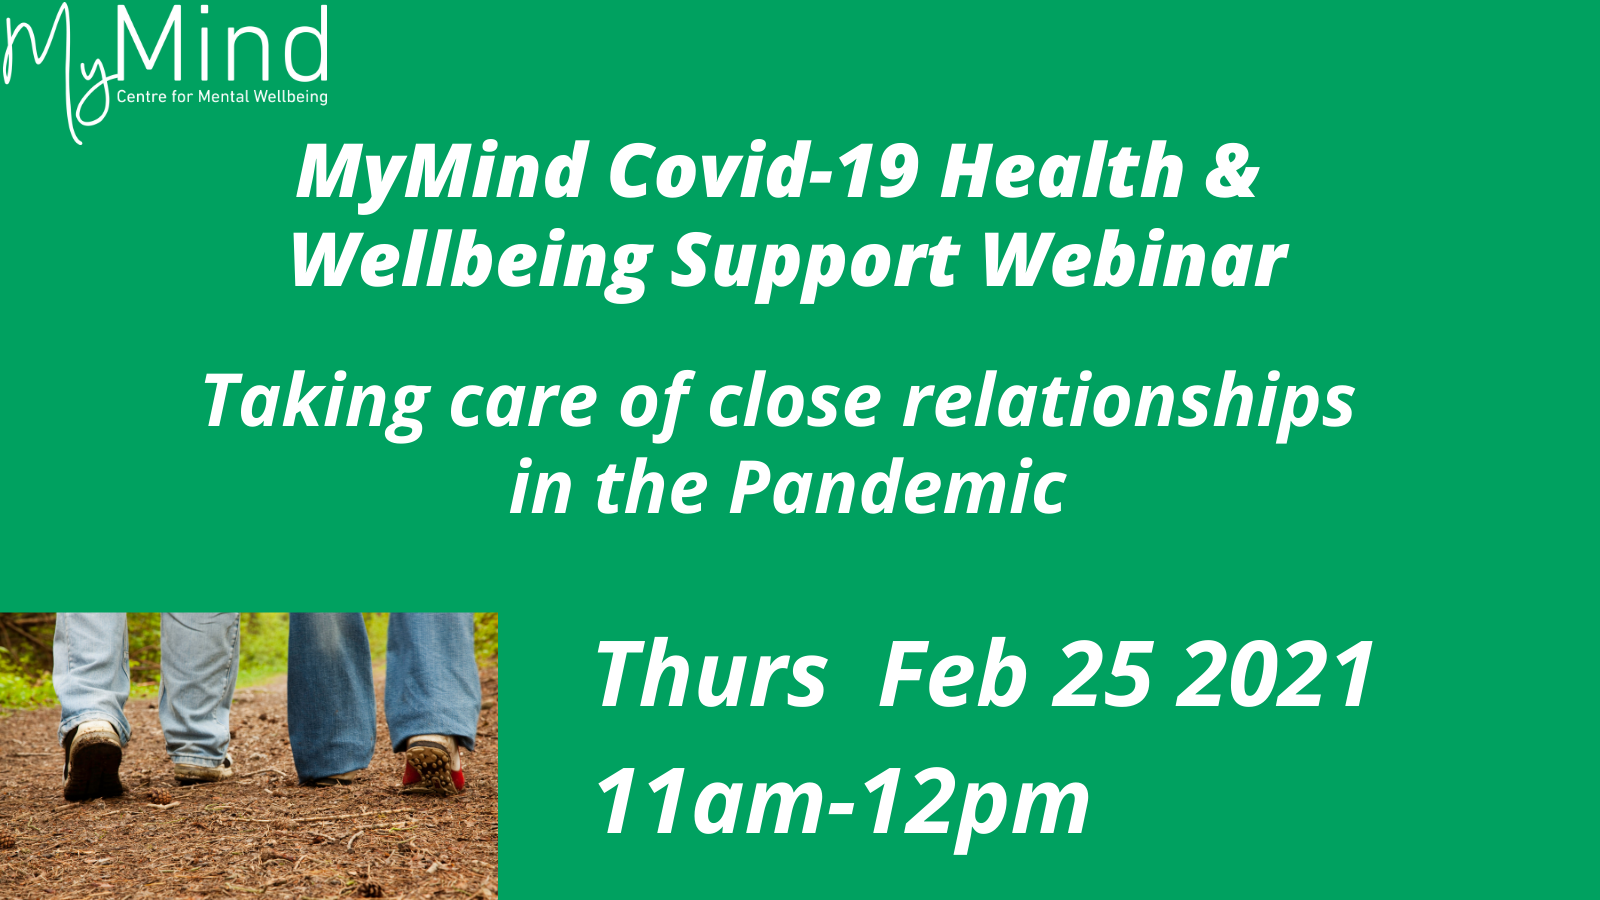 2021 Webinar Series: Taking care of close relationships in the Pandemic